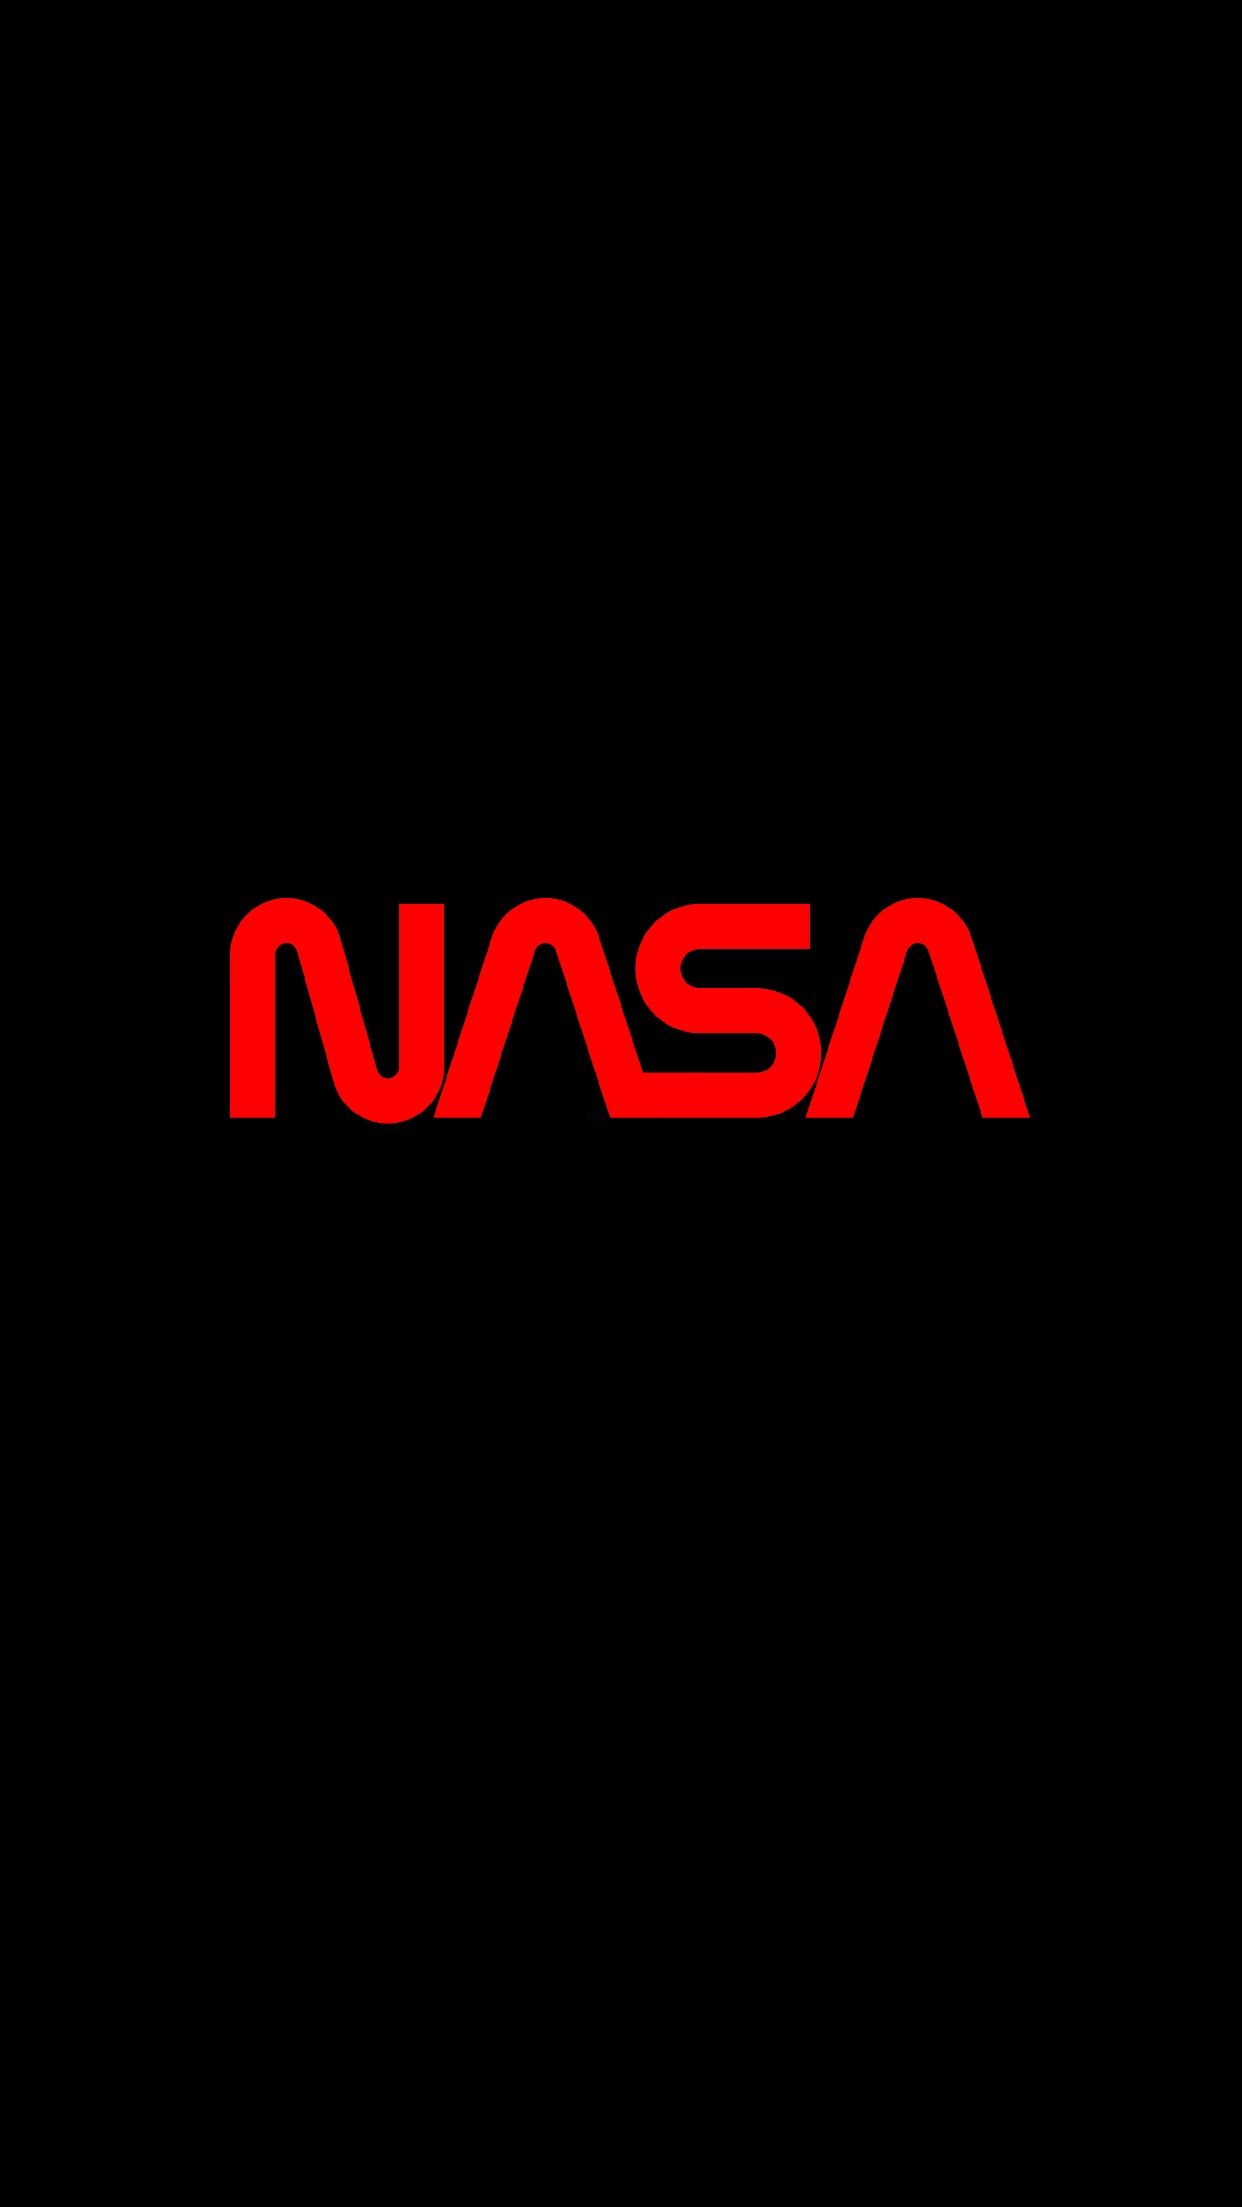 Vintage Nasa Phone Wallpapers Top Free Vintage Nasa Phone Backgrounds Wallpaperaccess Find best nasa wallpaper and ideas by device, resolution, and quality (hd, 4k) from a android users need to check their android version as it may vary. vintage nasa phone wallpapers top